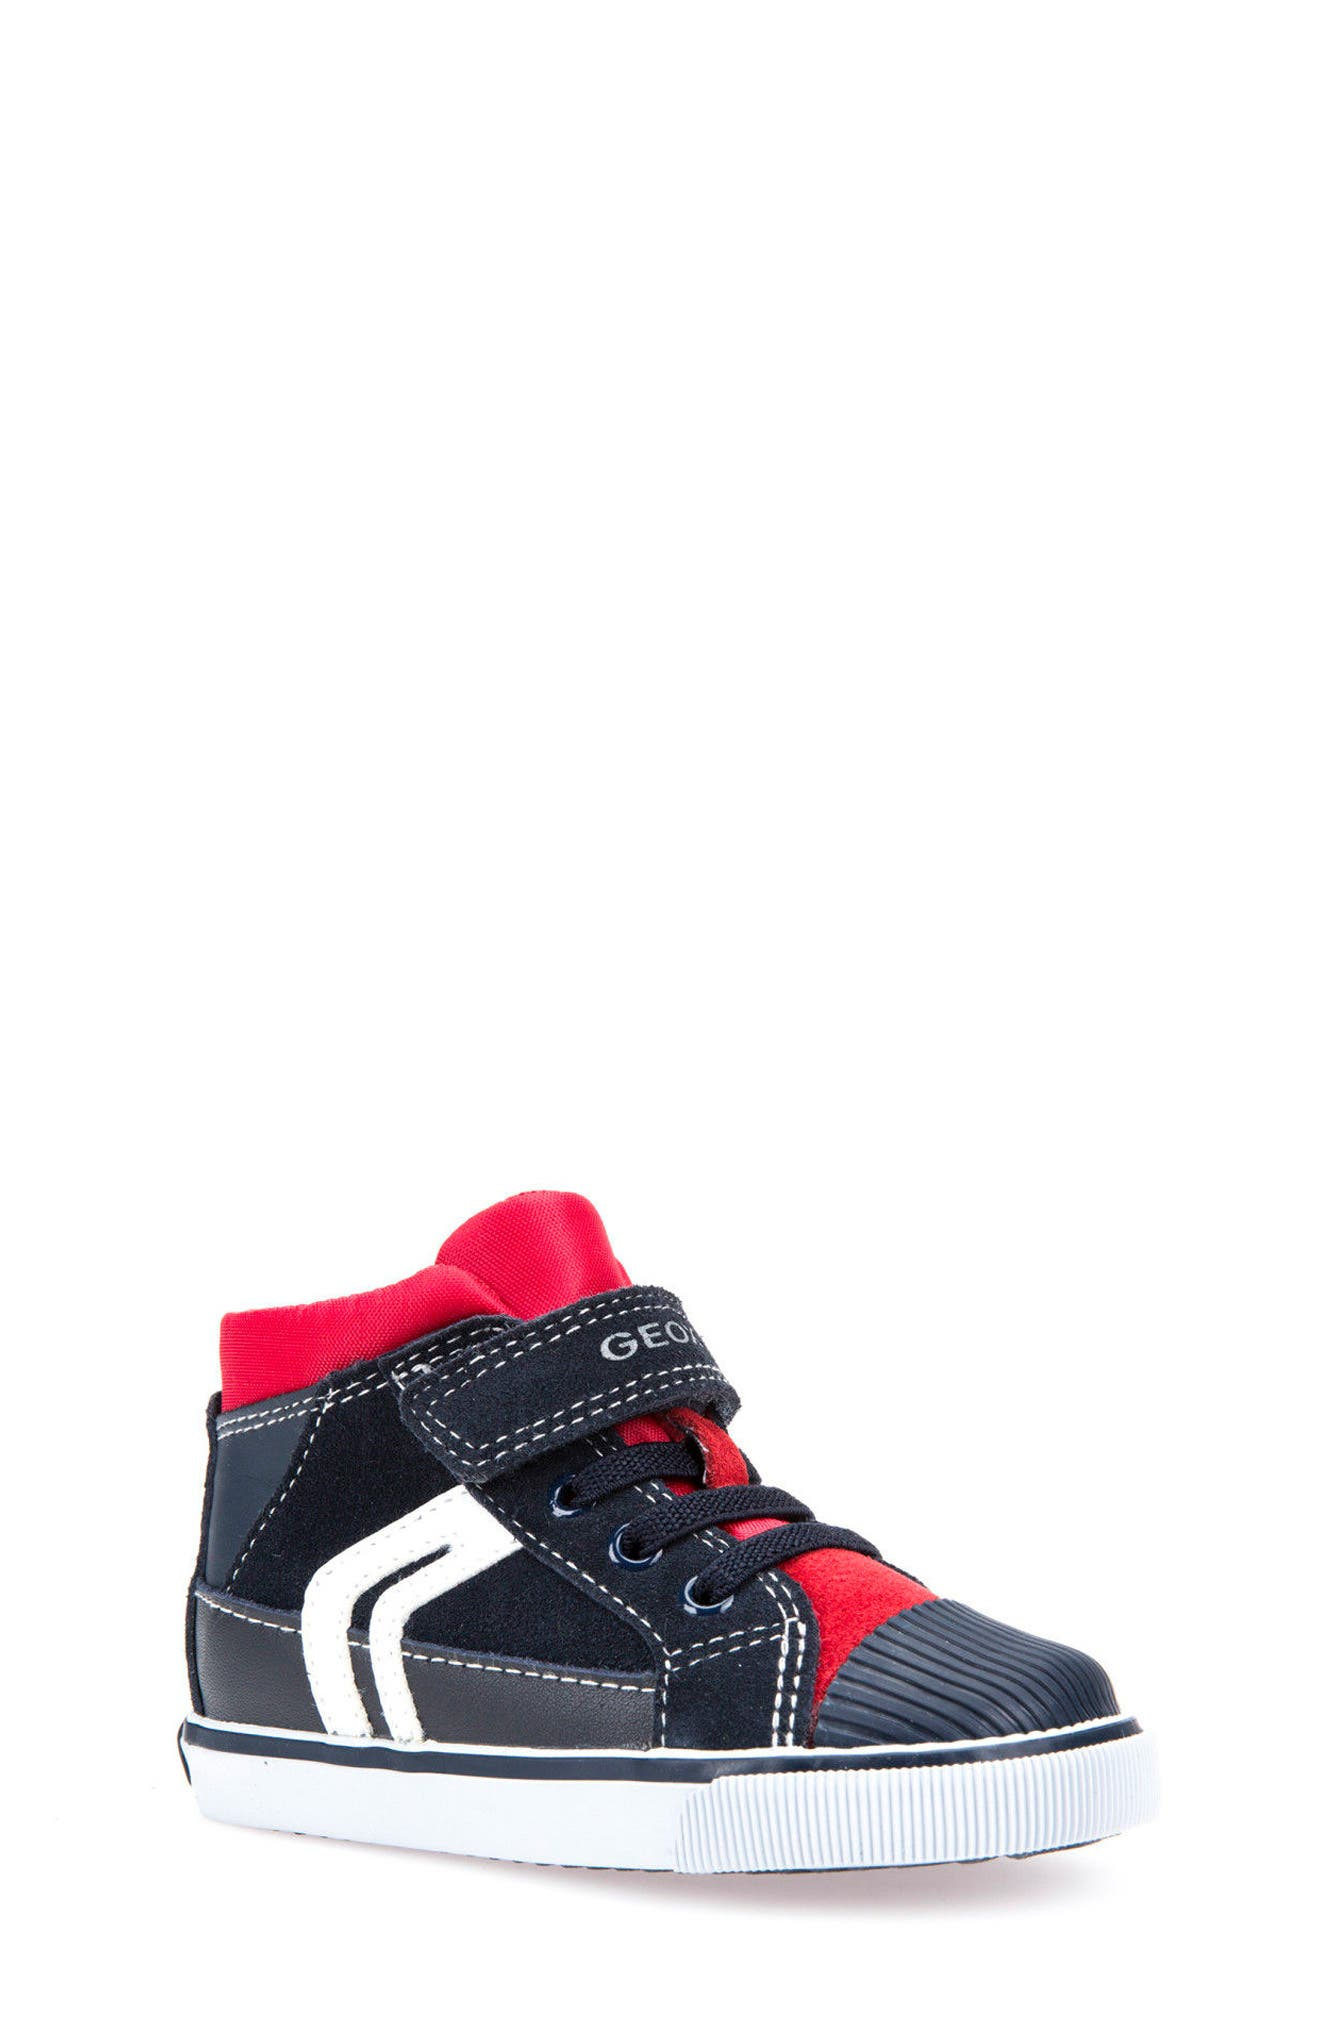 Kiwi Boy High Top Sneaker,                             Main thumbnail 1, color,                             Navy/ Red